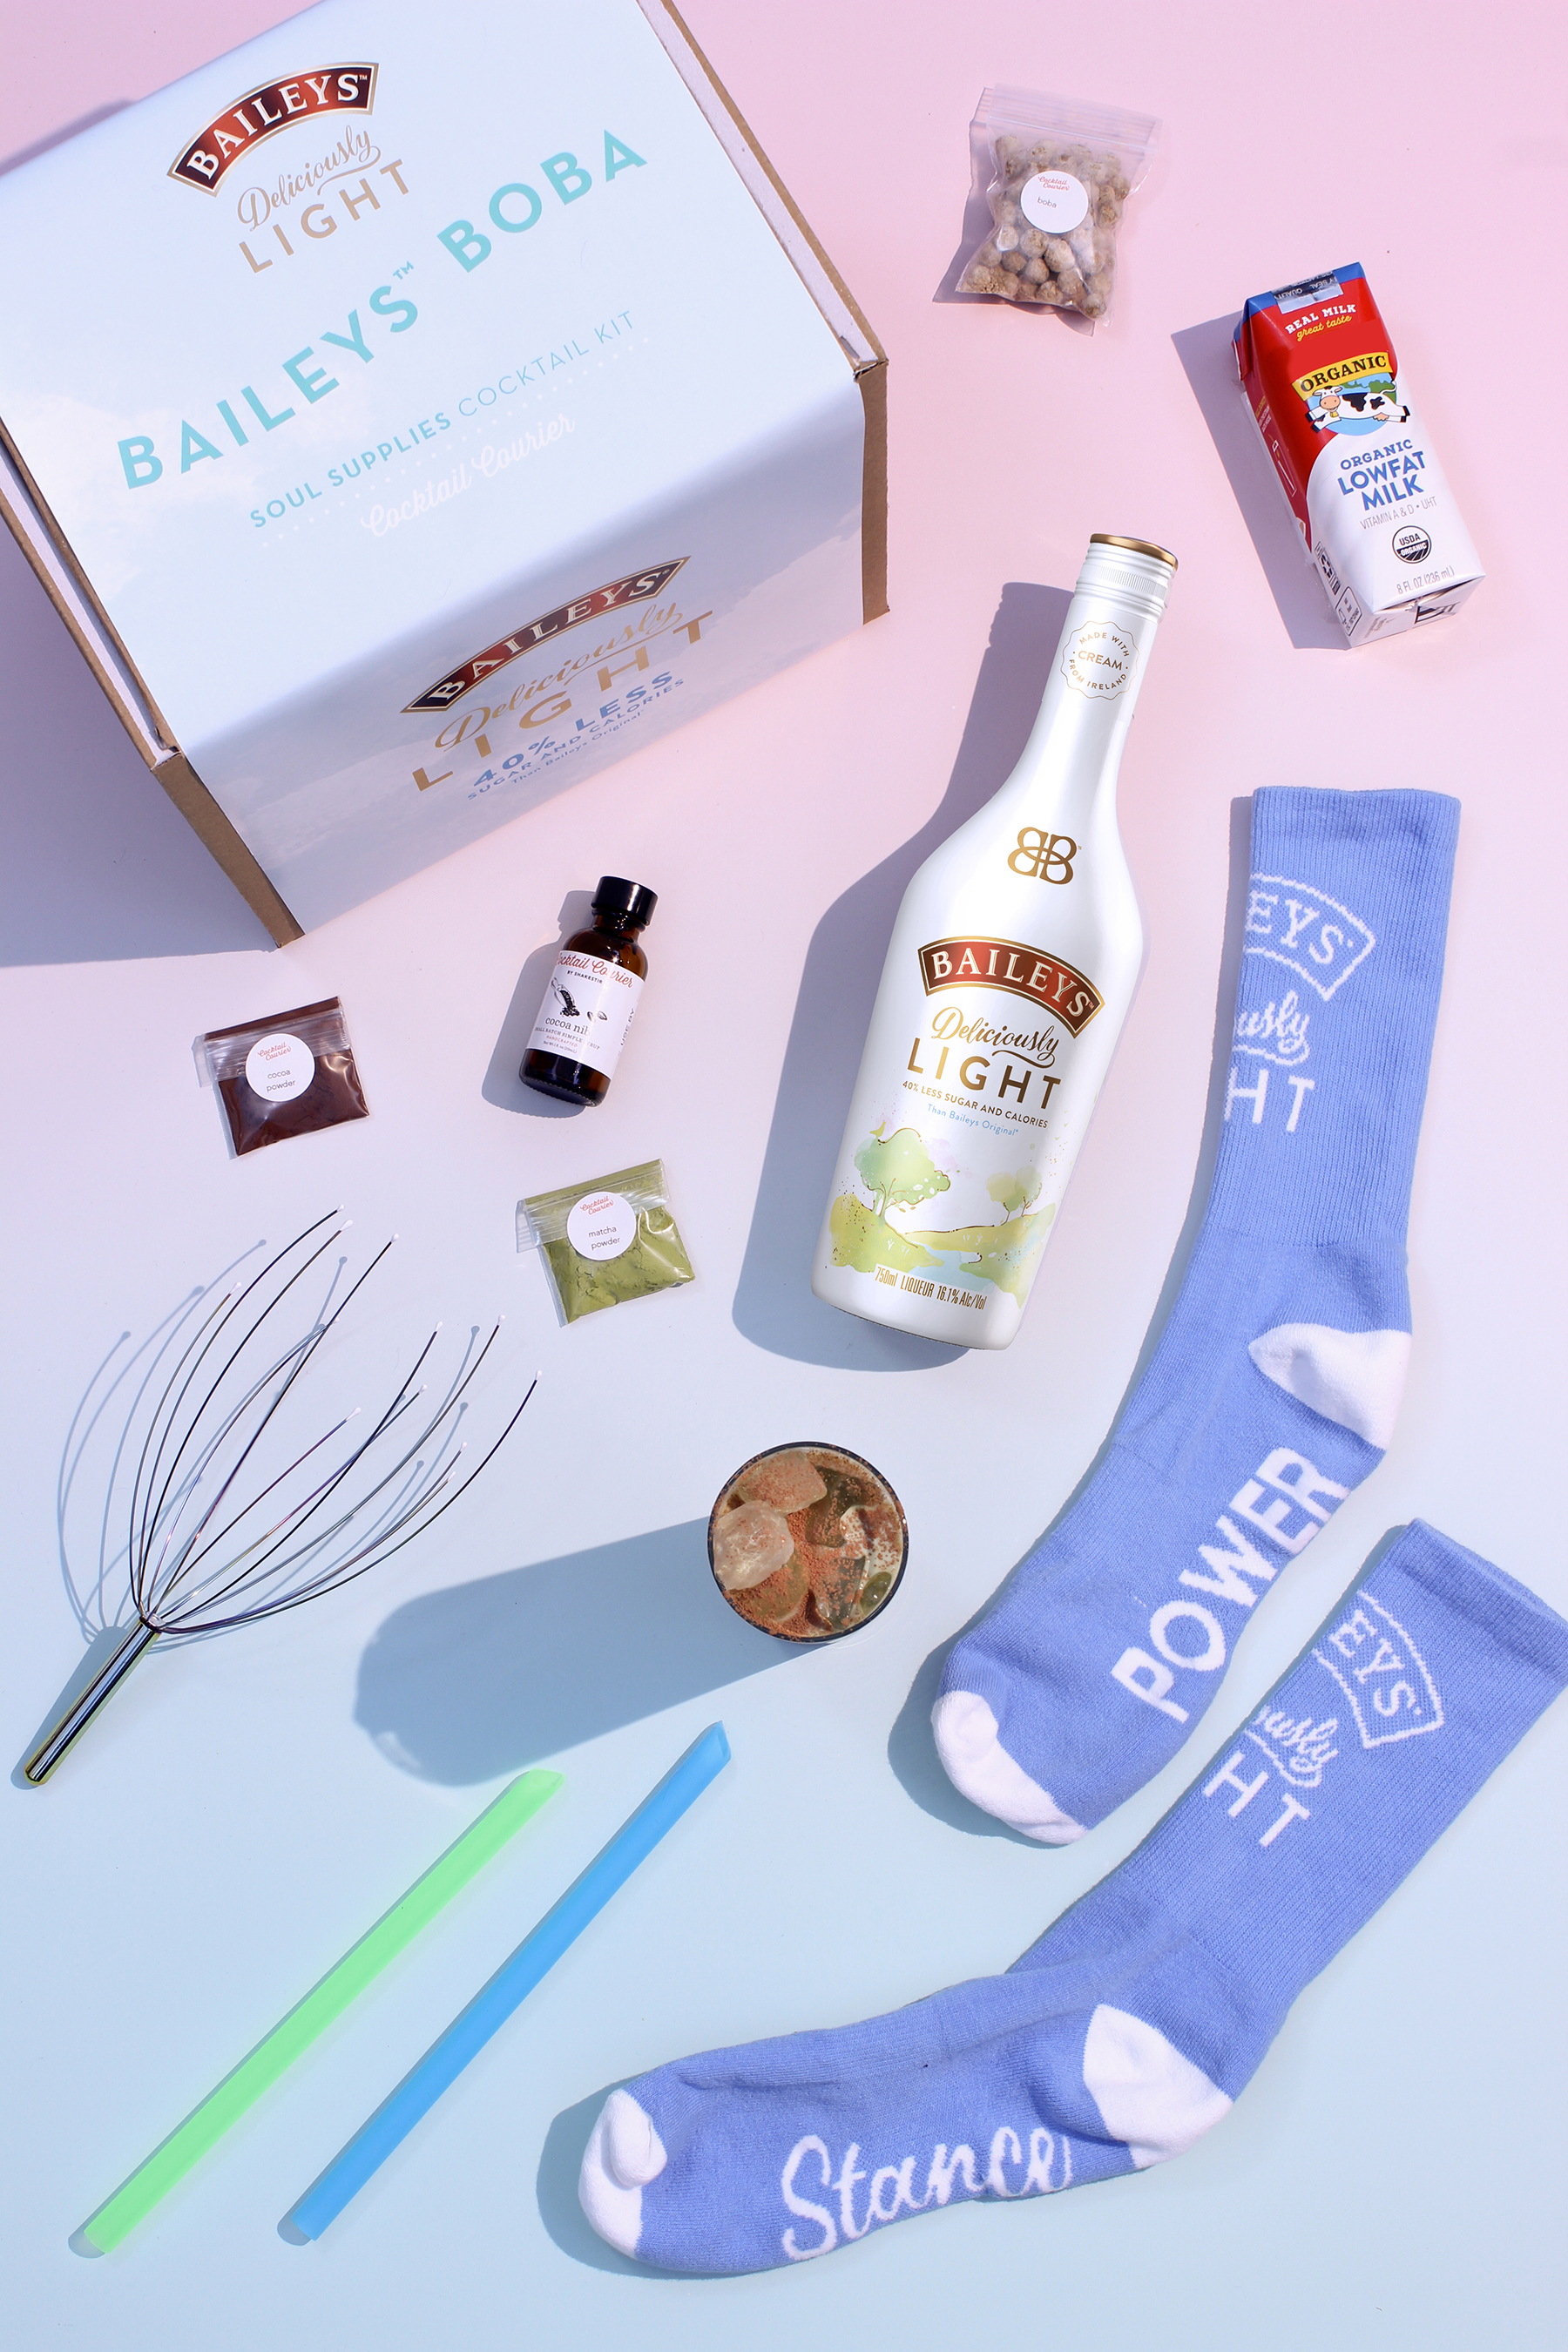 Baileys Deliciously Light Soul Supplies Light Break Kit